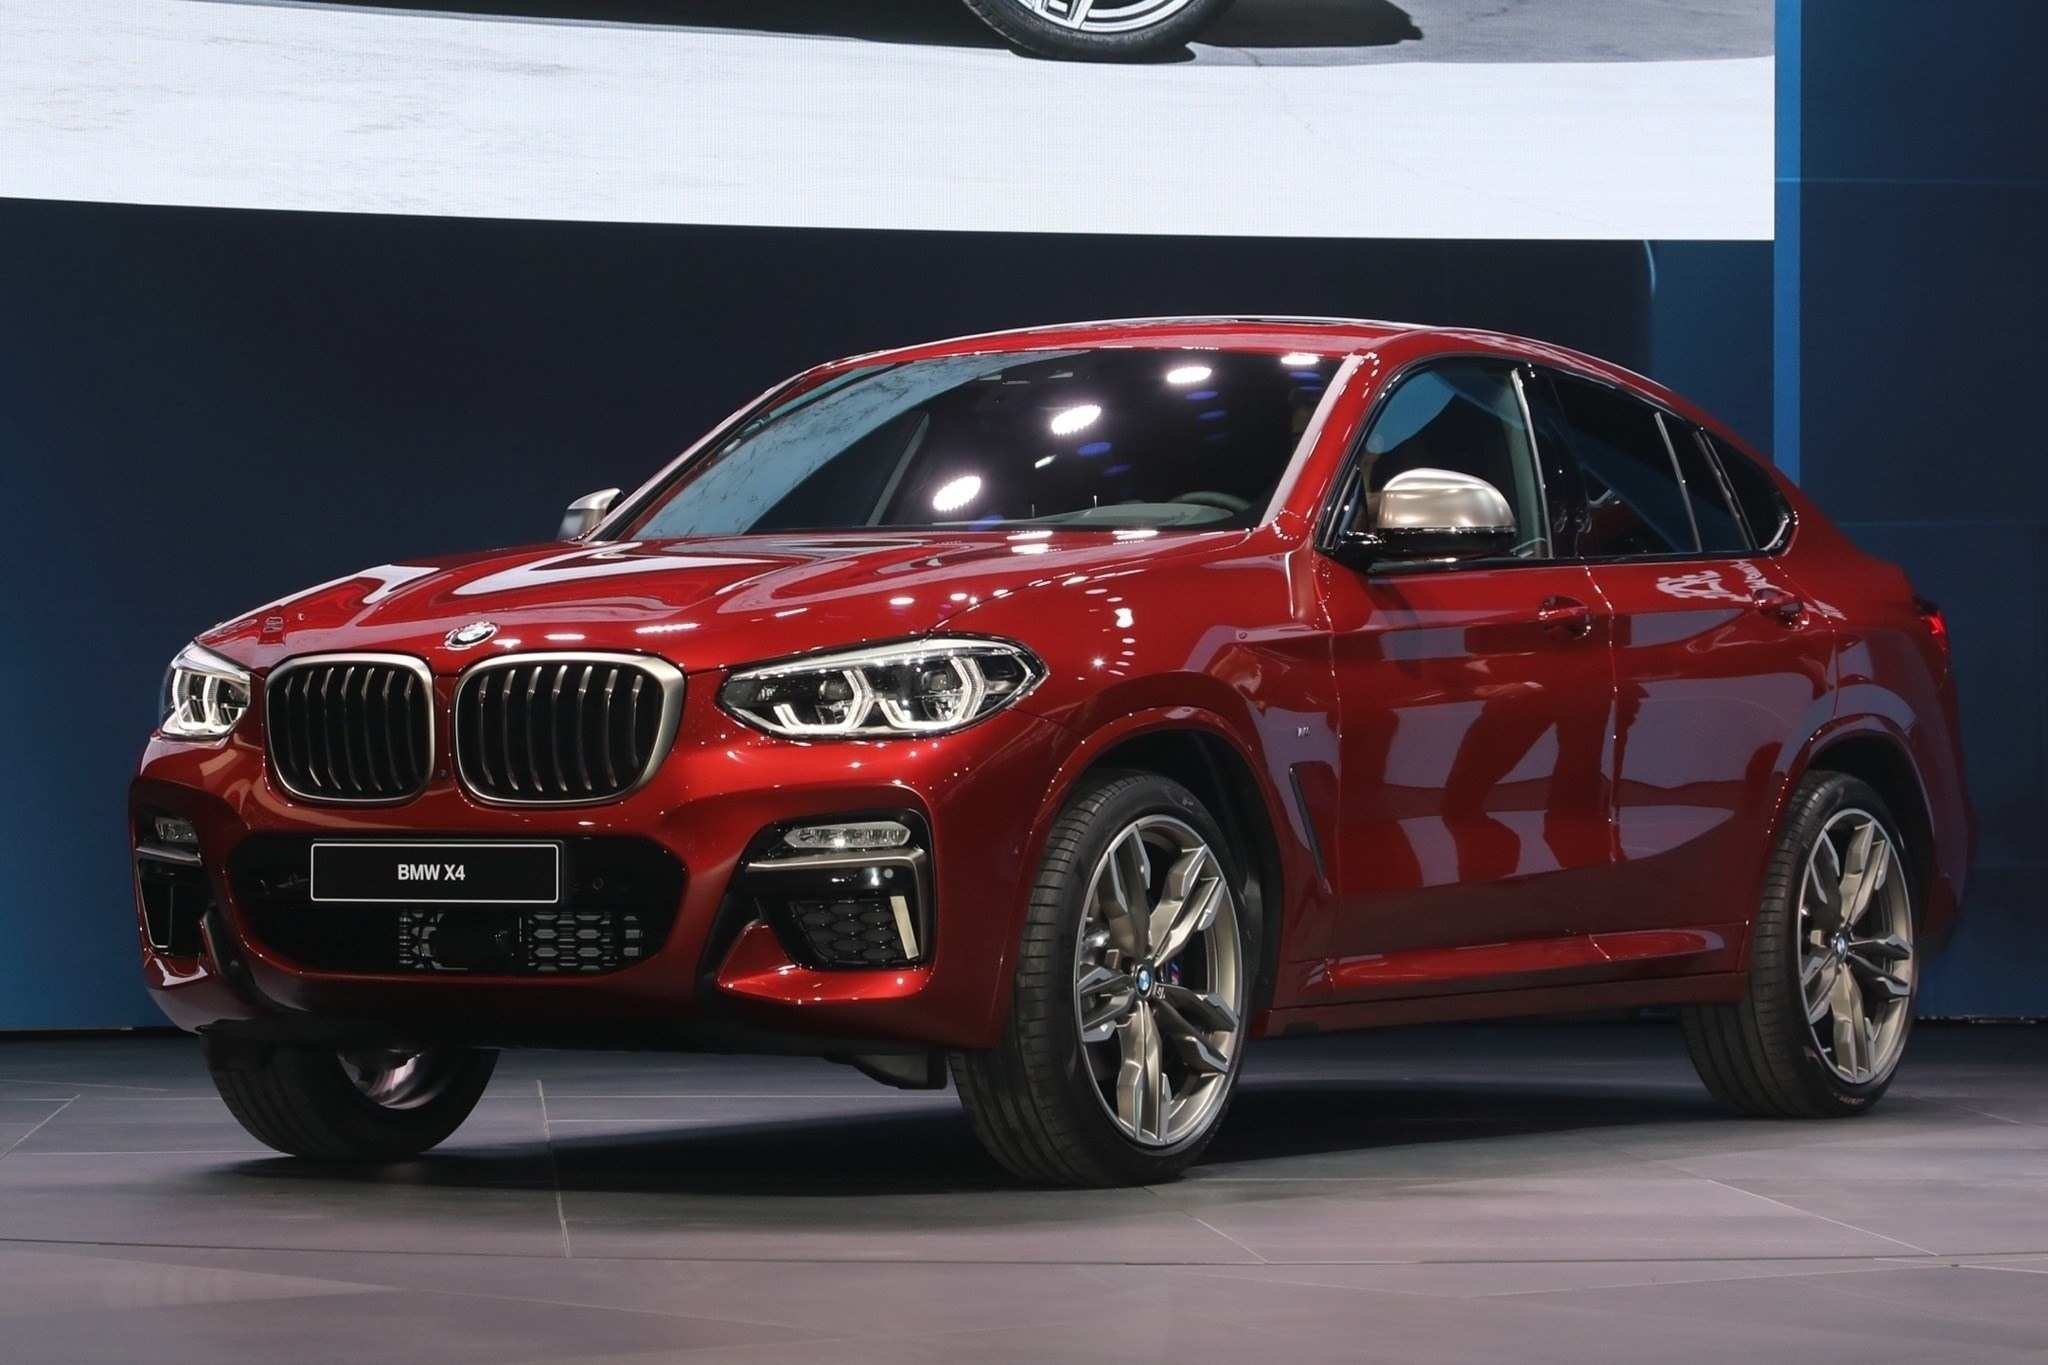 32 New Upcoming Bmw 2019 Concept Redesign And Review Overview by Upcoming Bmw 2019 Concept Redesign And Review